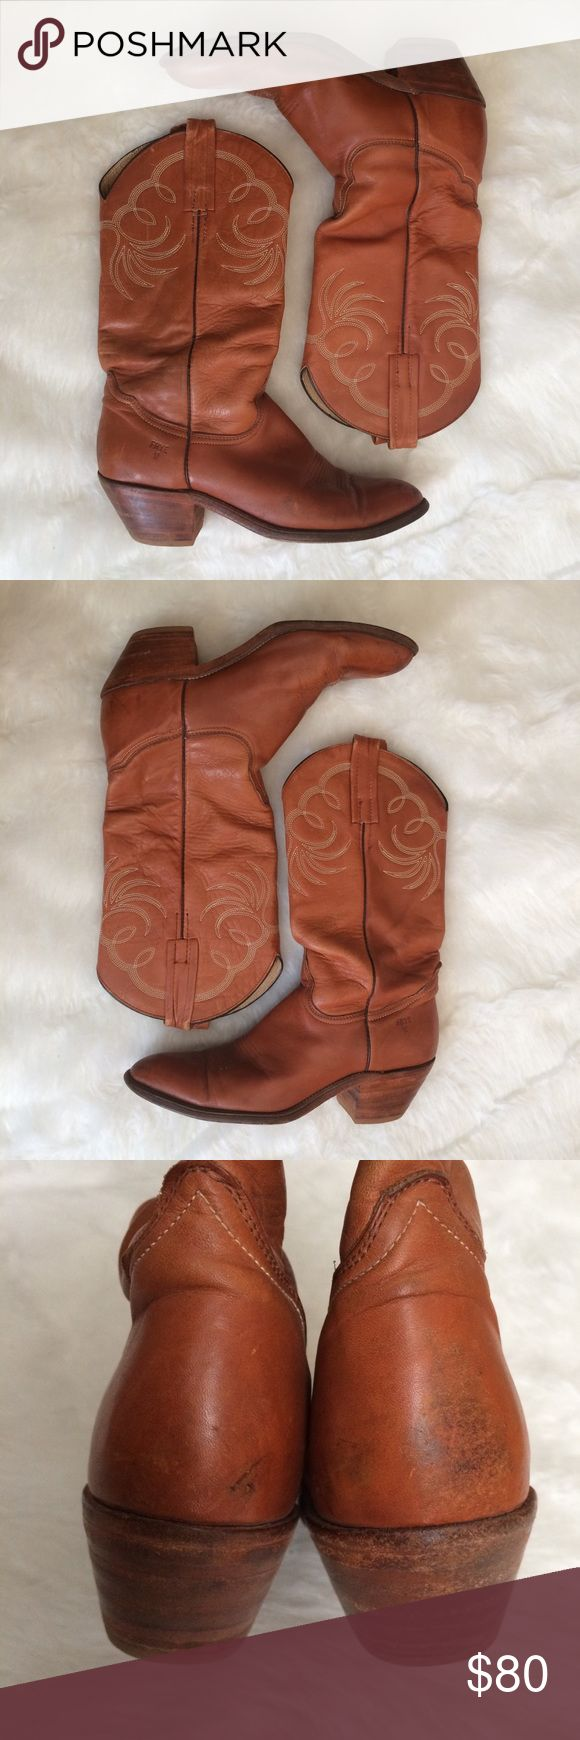 "FRYE Vintage Cowboy Western Riding Boots Size 10.5 Vintage Women's FRYE Cowboy boots. Size 10.5 Stacked heel Heel height (measured from the back of the heel) 2.5"" Boot height (measured from tallest part of upper to bottom of heel) 14.75"" Style# 3205 Very good vintage condition. Scuffs to toes & heels as shown in photos. Frye Shoes Heeled Boots"